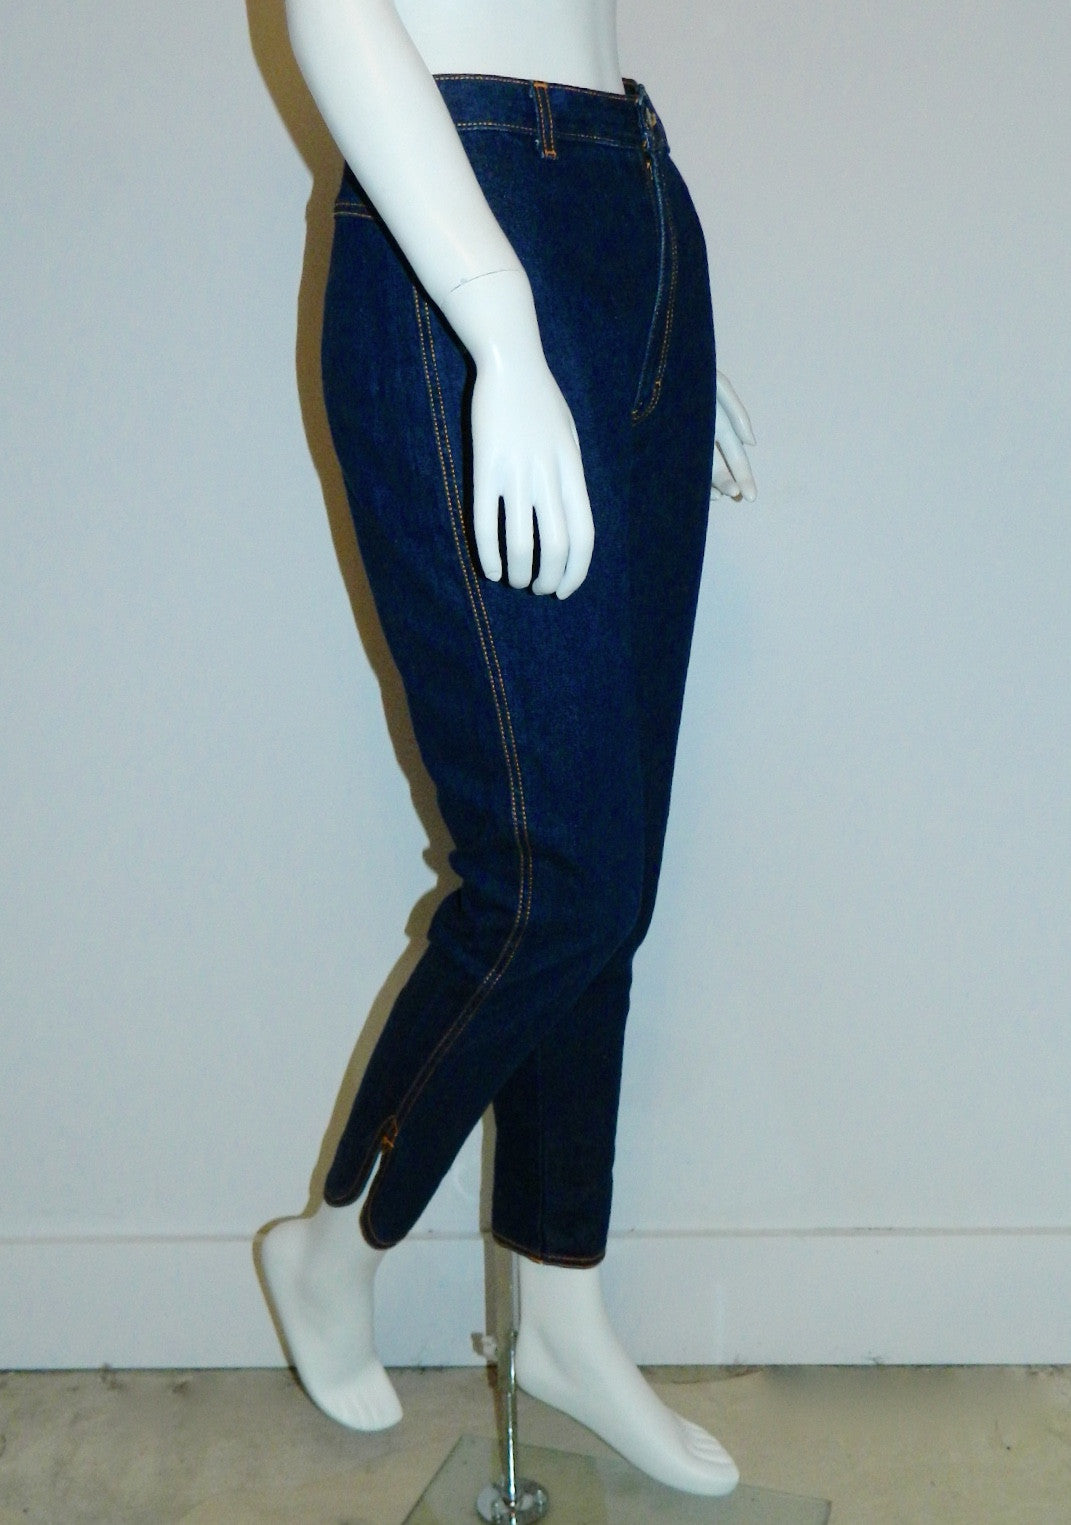 vintage 1980s does 1950s jeans / PS Gitano dark rinse skinny jeans / high waisted XS